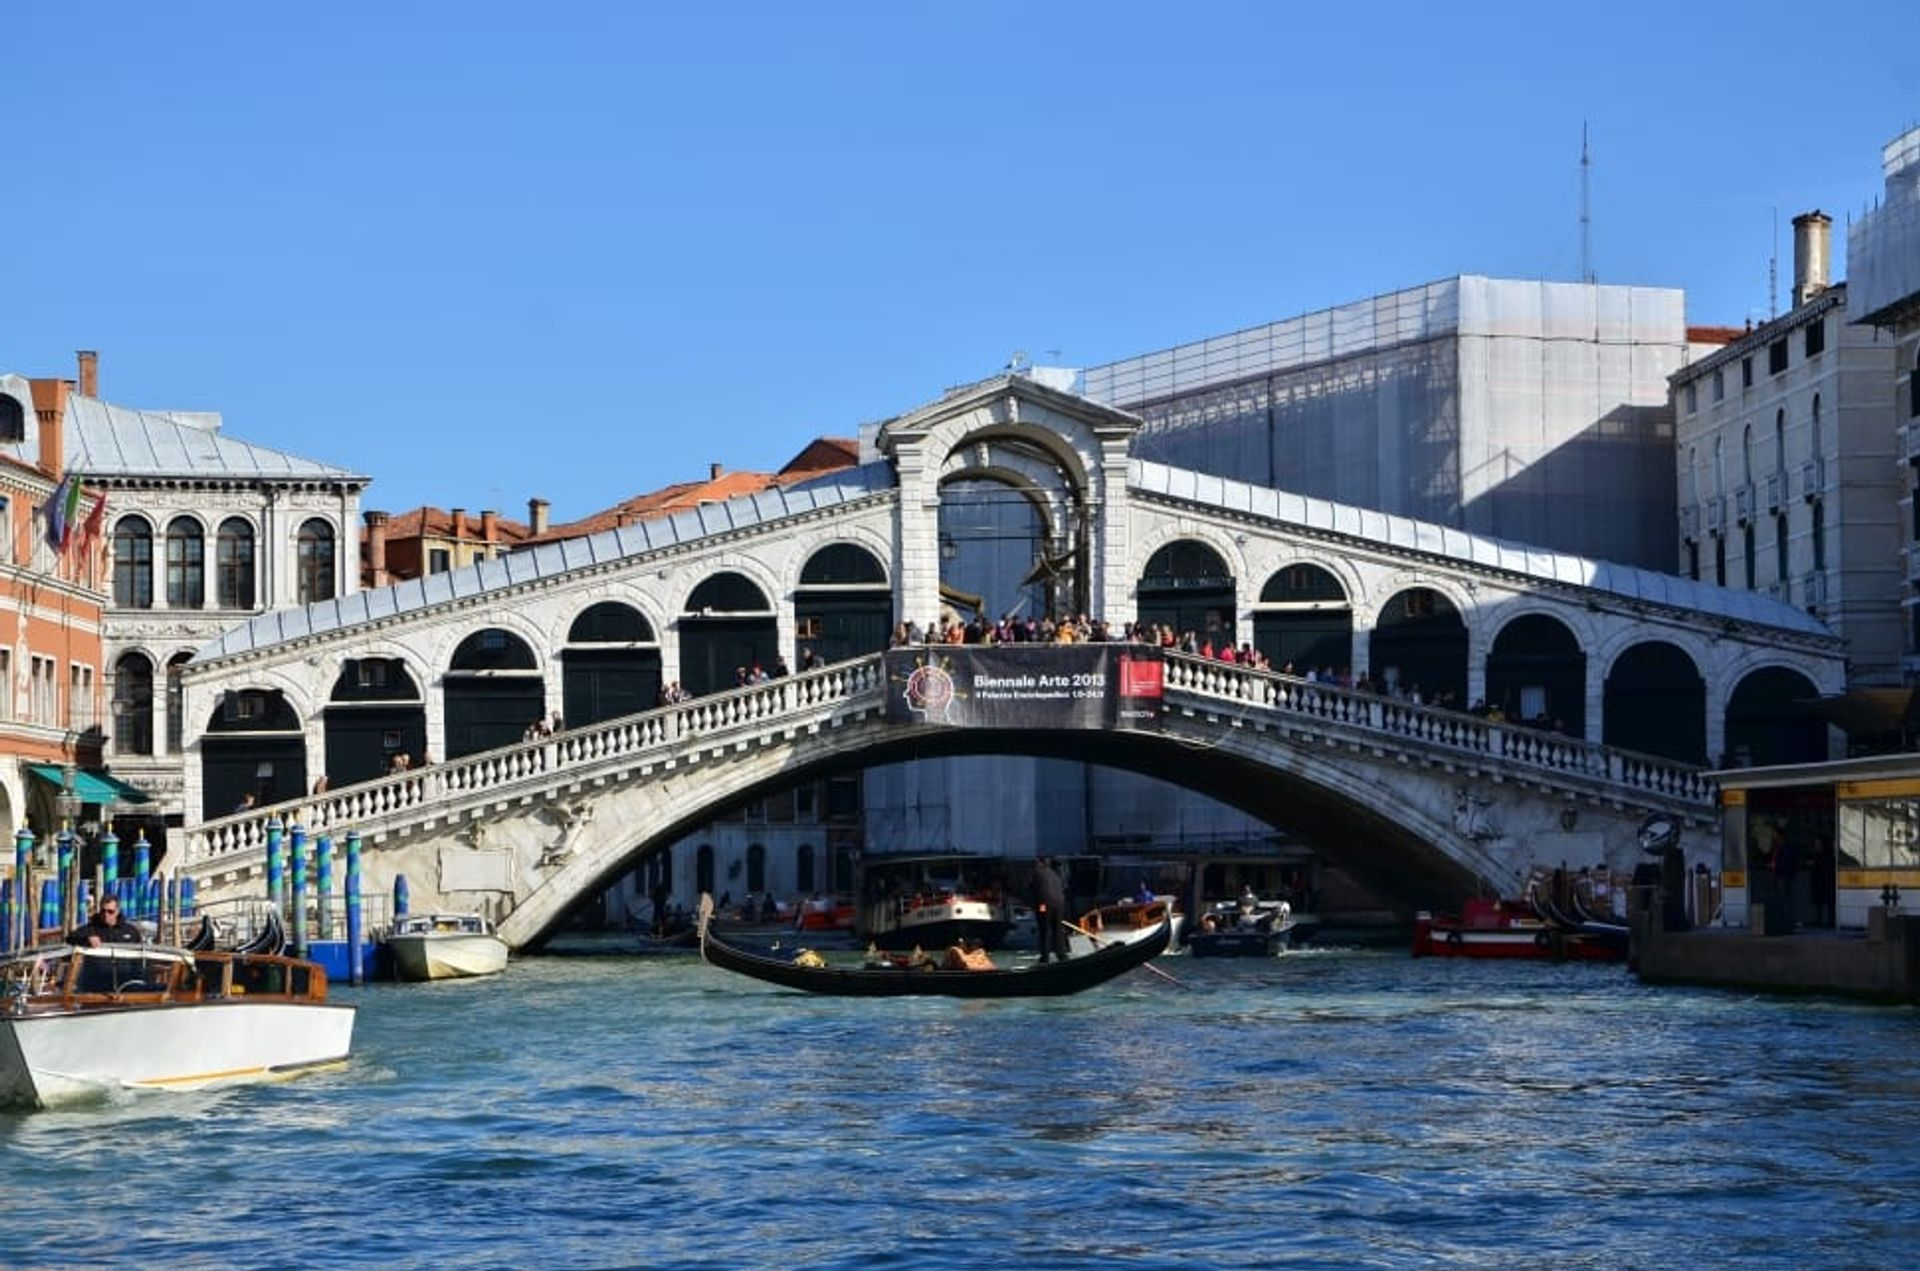 The Venice Biennale will now take place 23 April to 27 November 2022